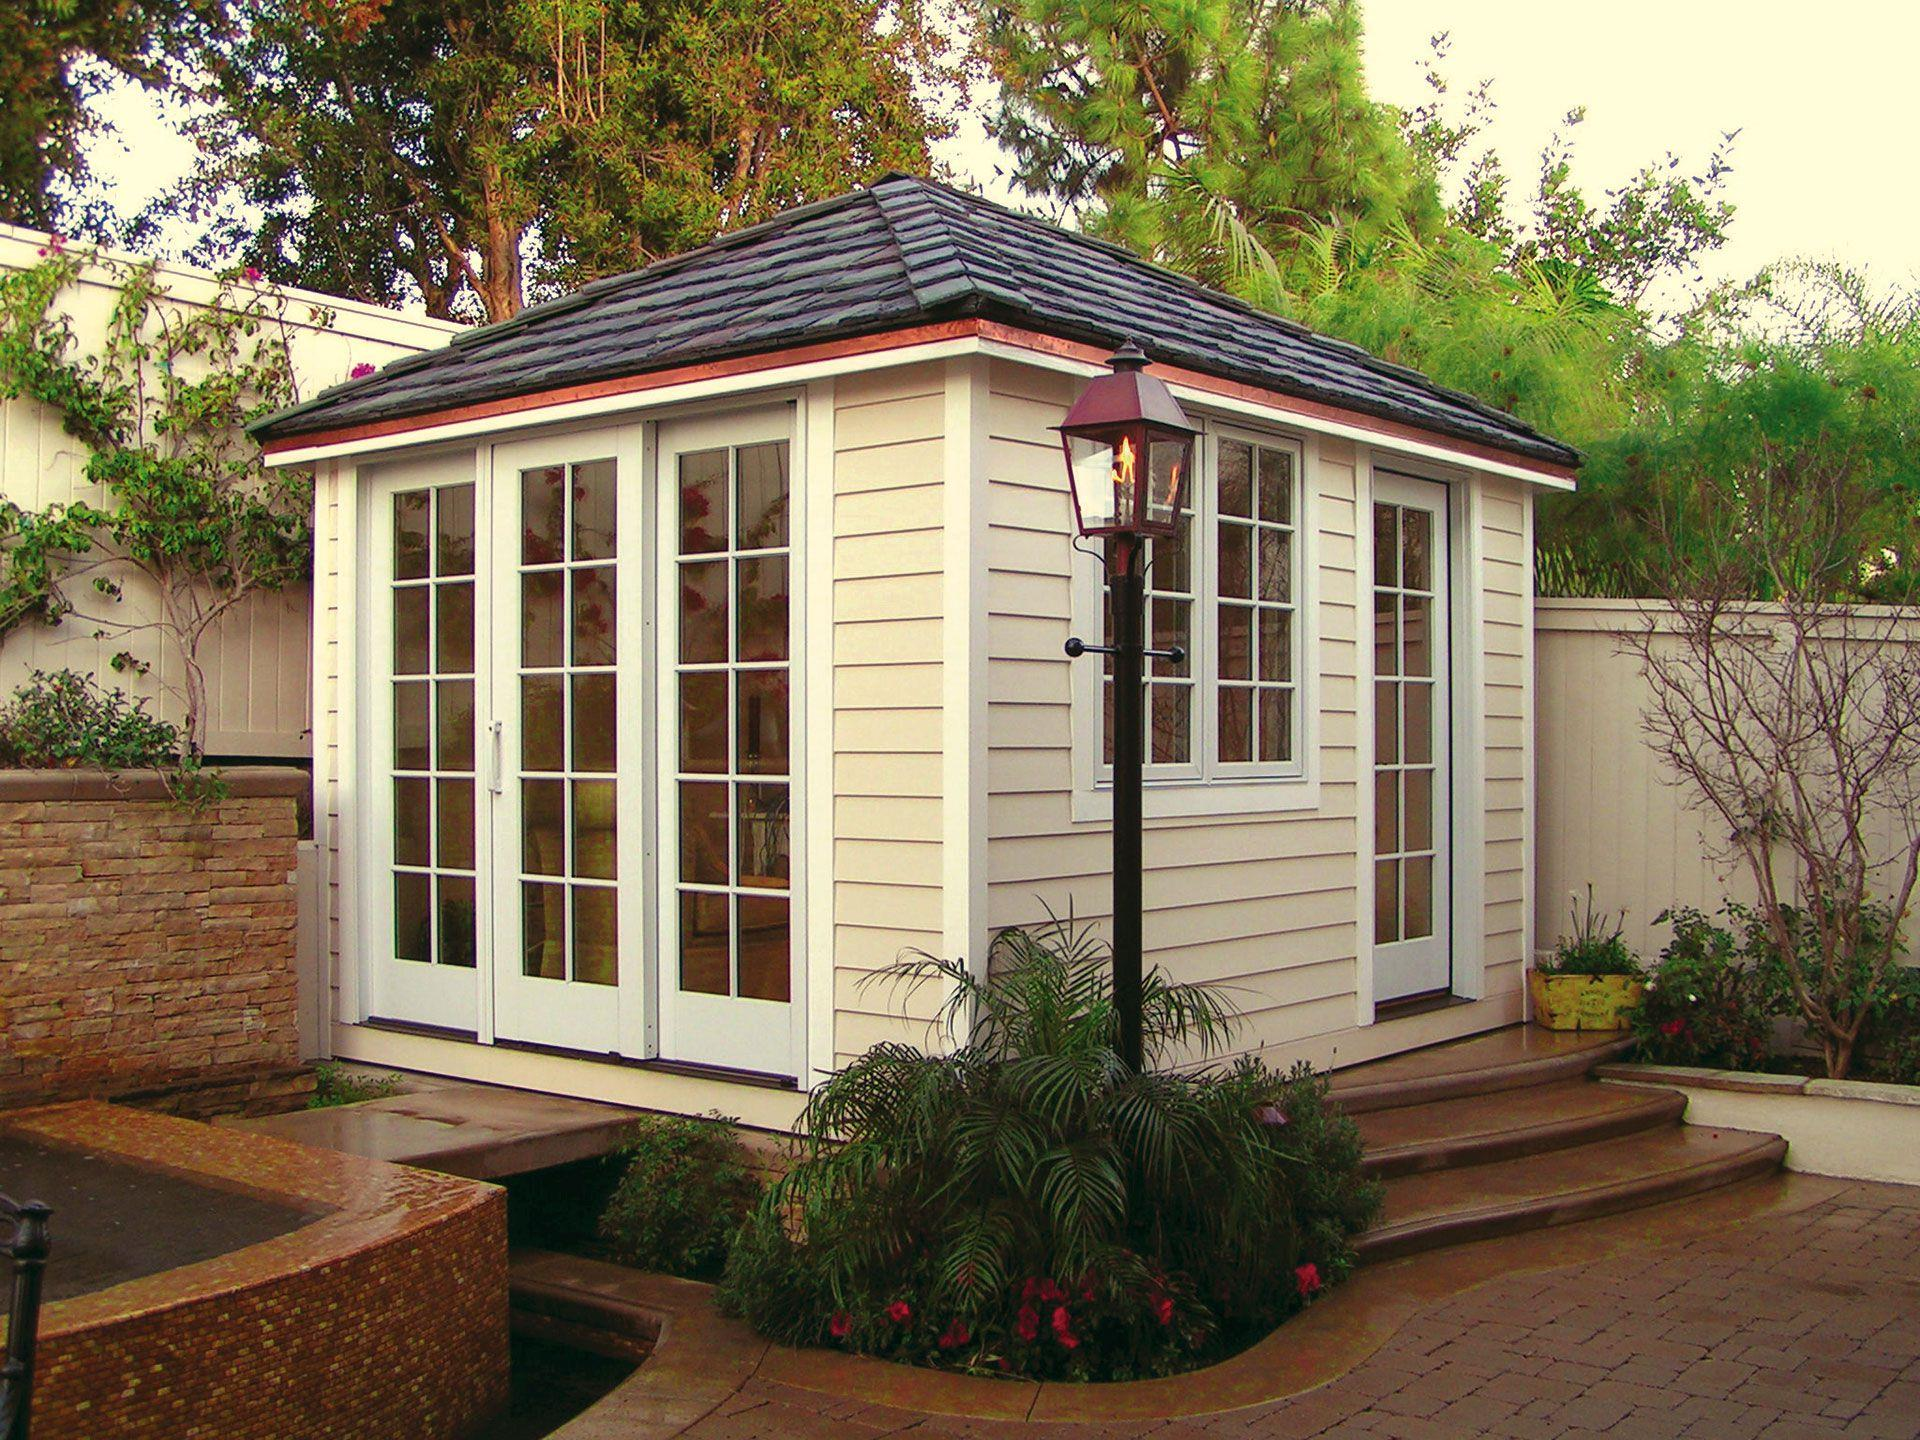 Traditional Spa Enclosure Sheds Design Trade Program Summerwood ID number 5146